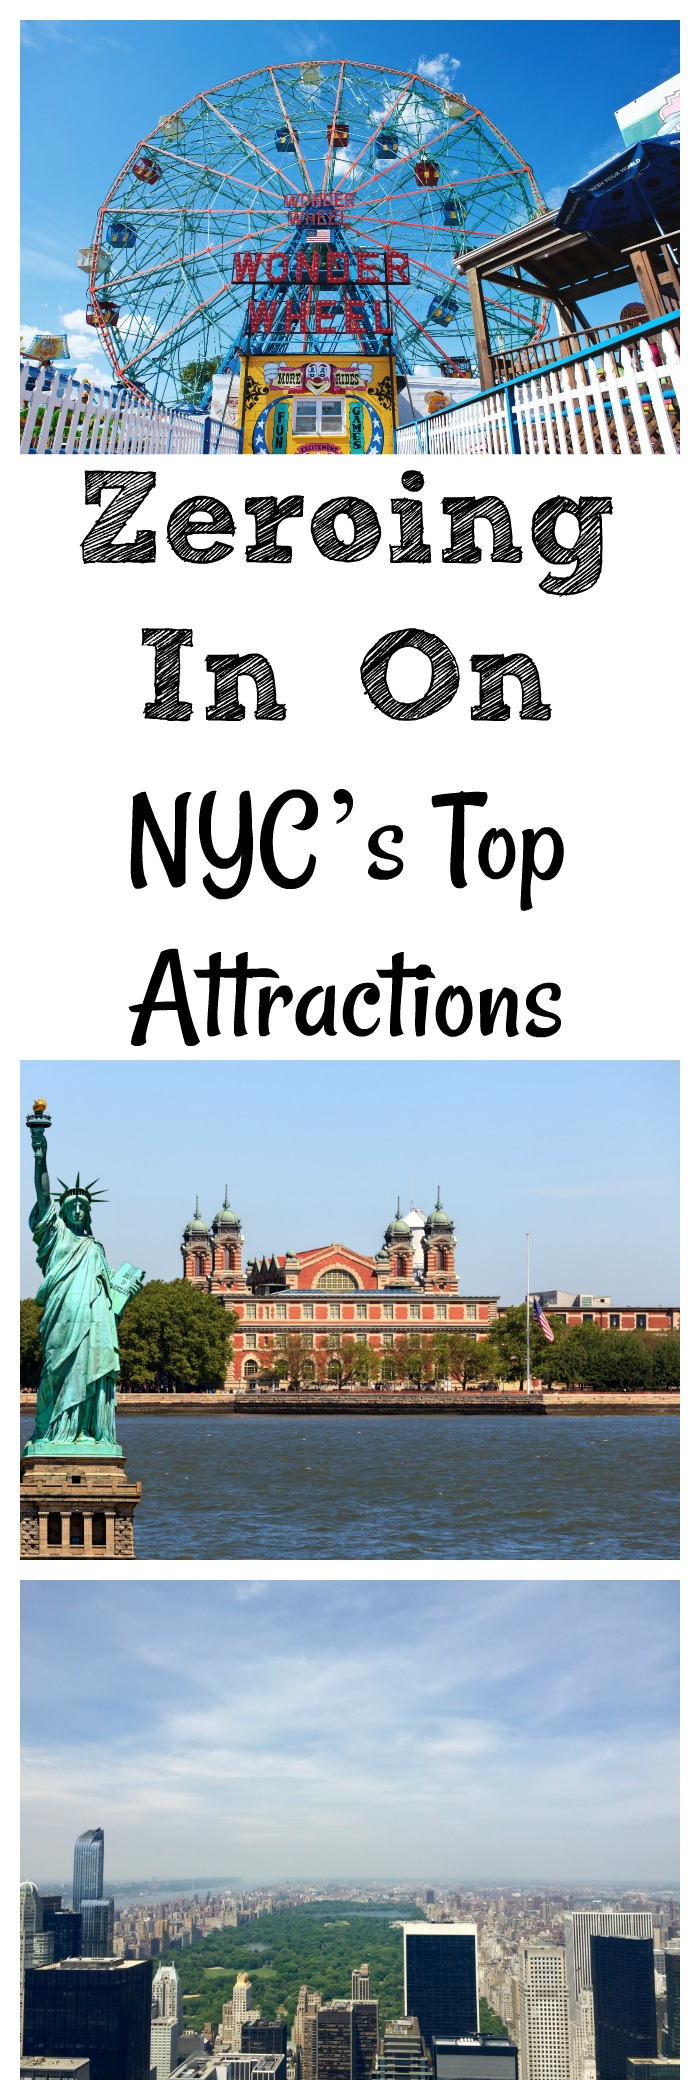 Must see things in New York City? Zeroing In On NYC's Top Attractions for your next trip to New York City.